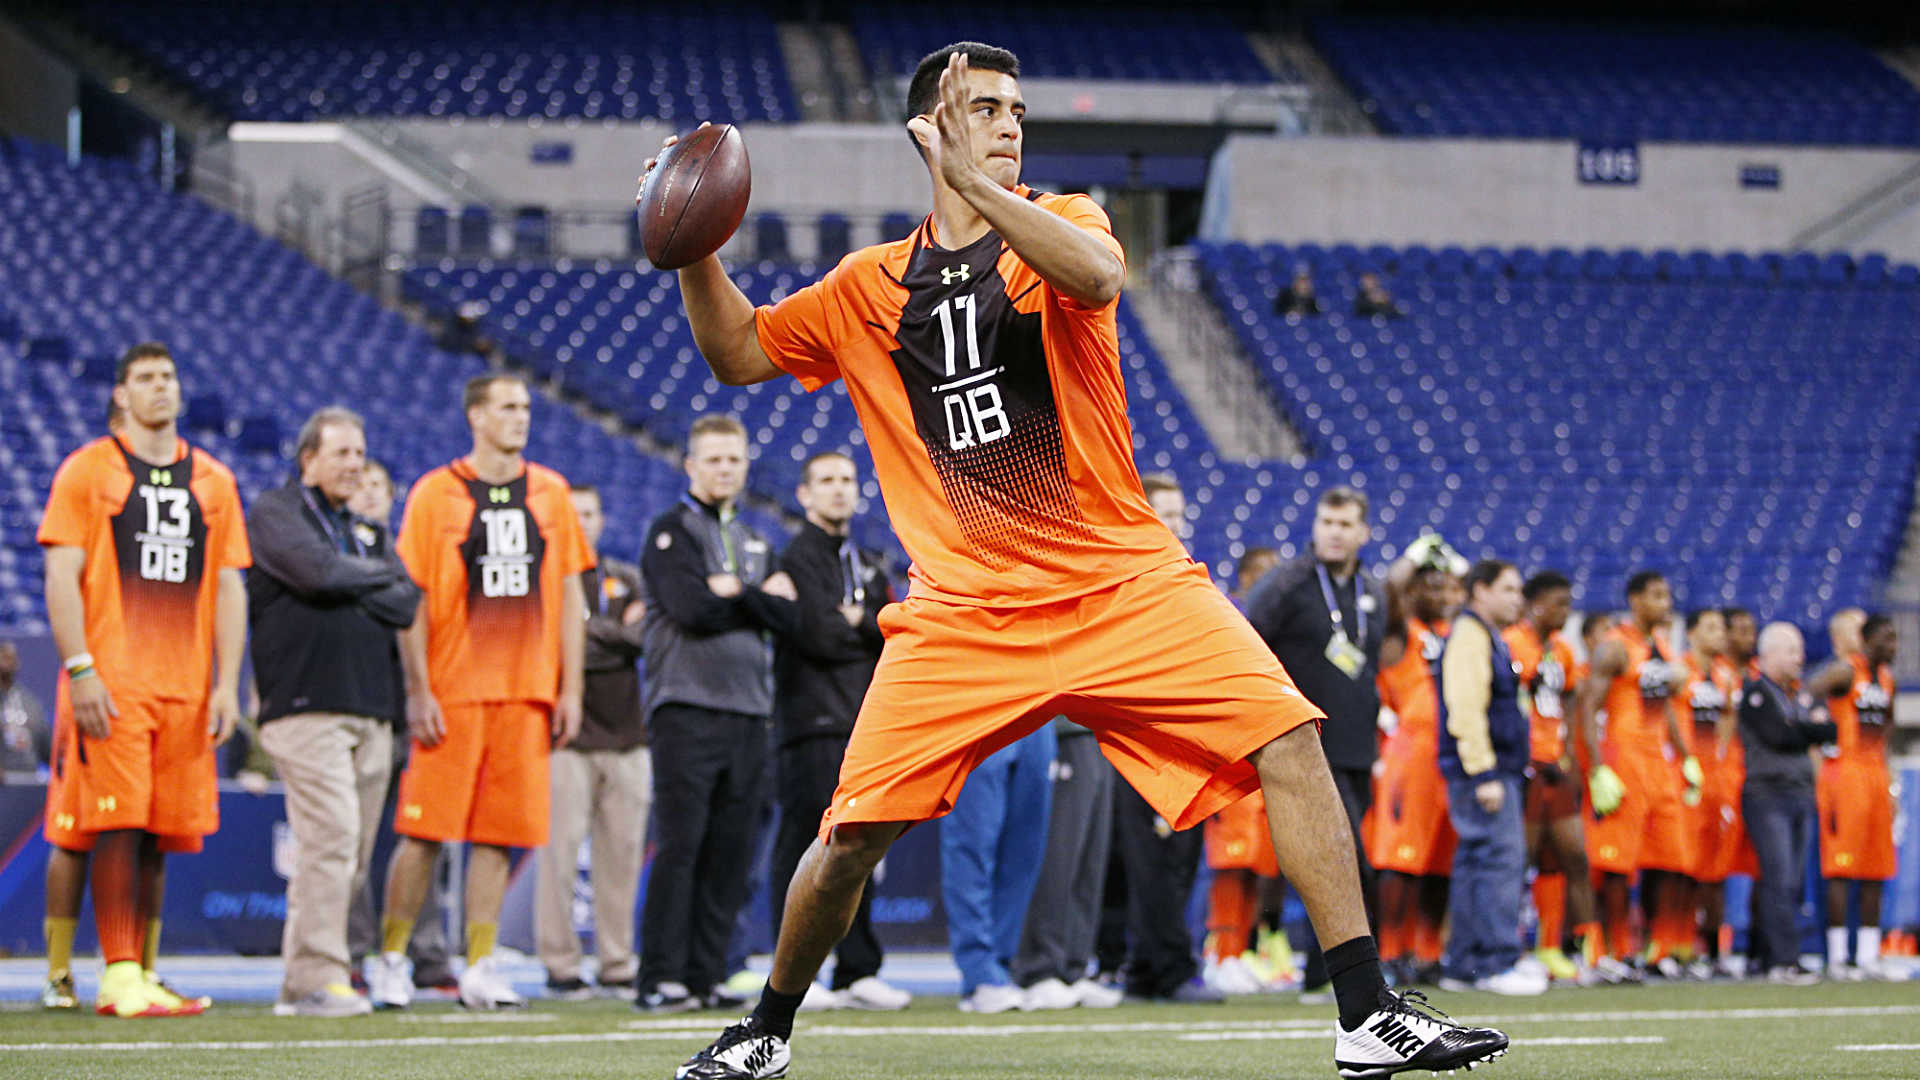 Nfl Combine 2014 Dates Looking ahead: key dates in 2014